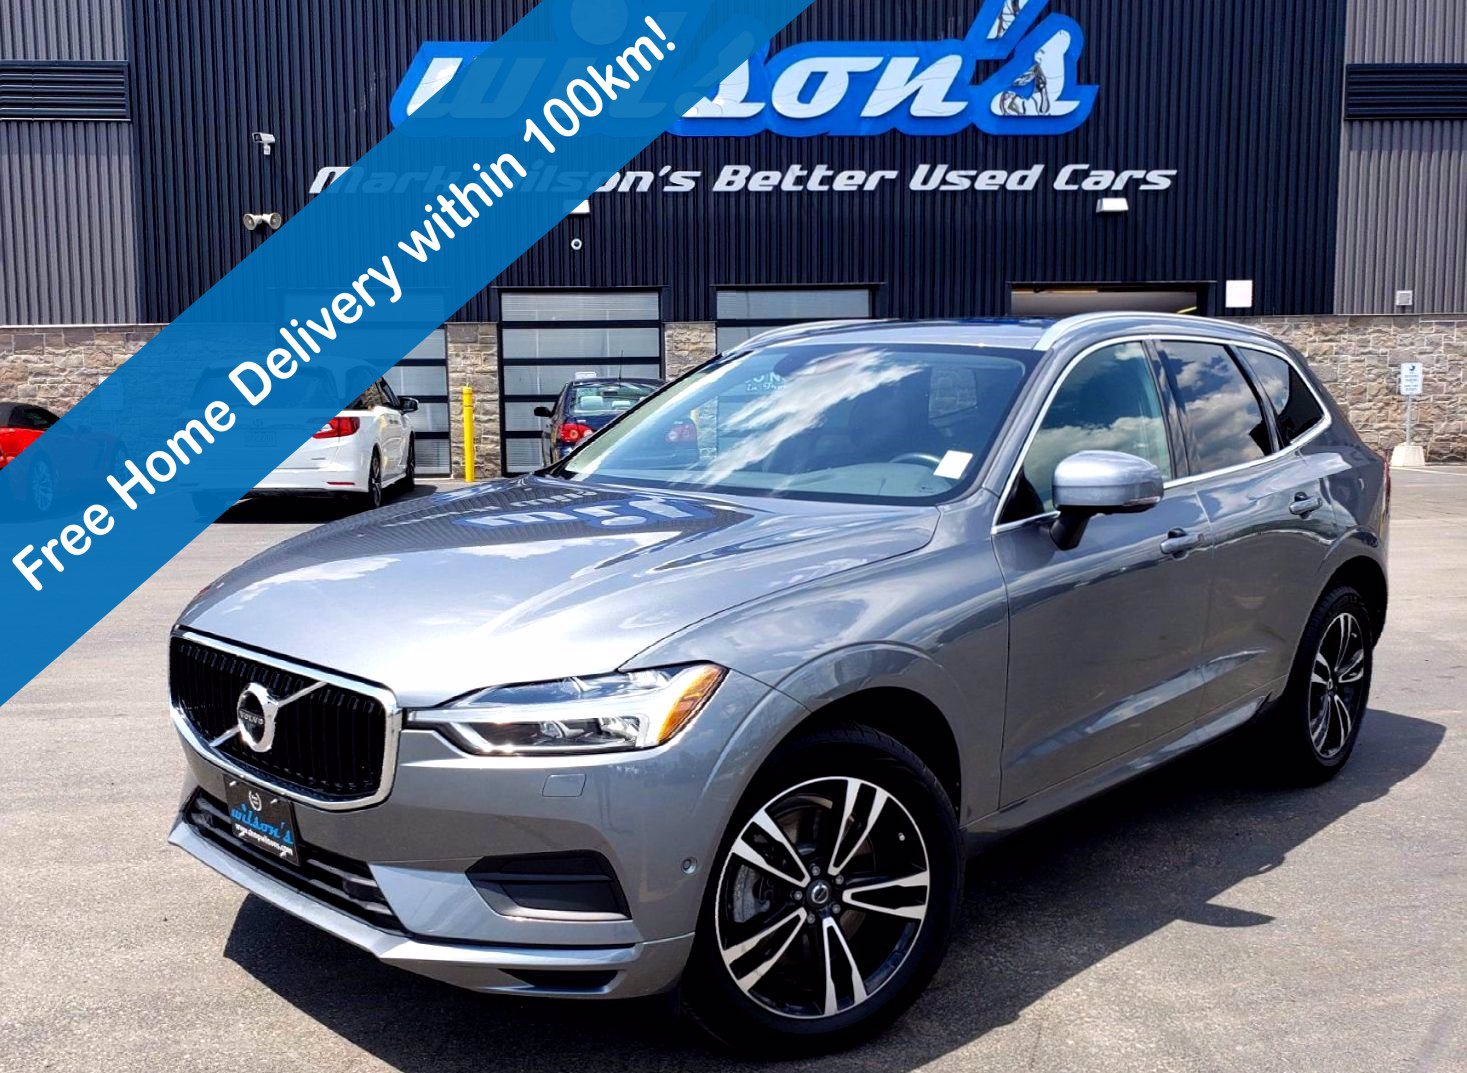 Certified Pre-Owned 2018 Volvo XC60 Momentum AWD, Navigation, Sunroof, New Tires, Leather, Heated Steering, Power Hatch and more!